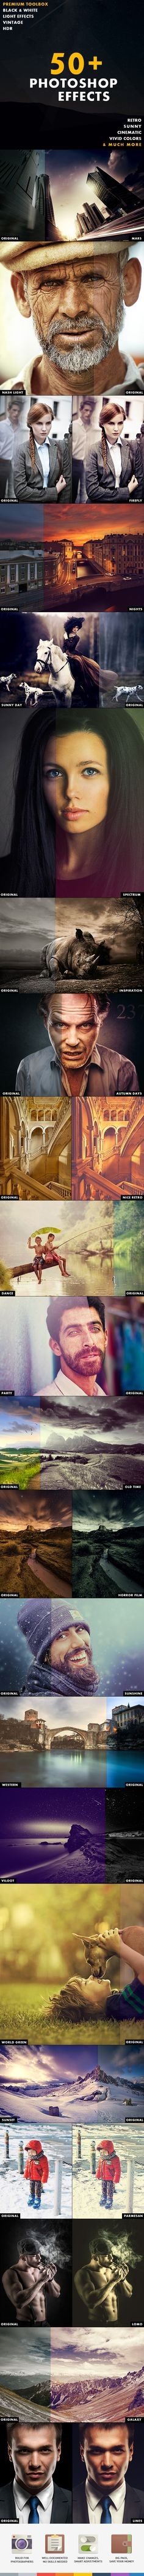 50+ Photoshop Effects — Photoshop ATN #photographer #new • Available here → https://graphicriver.net/item/50-photoshop-effects/10102349?ref=pxcr